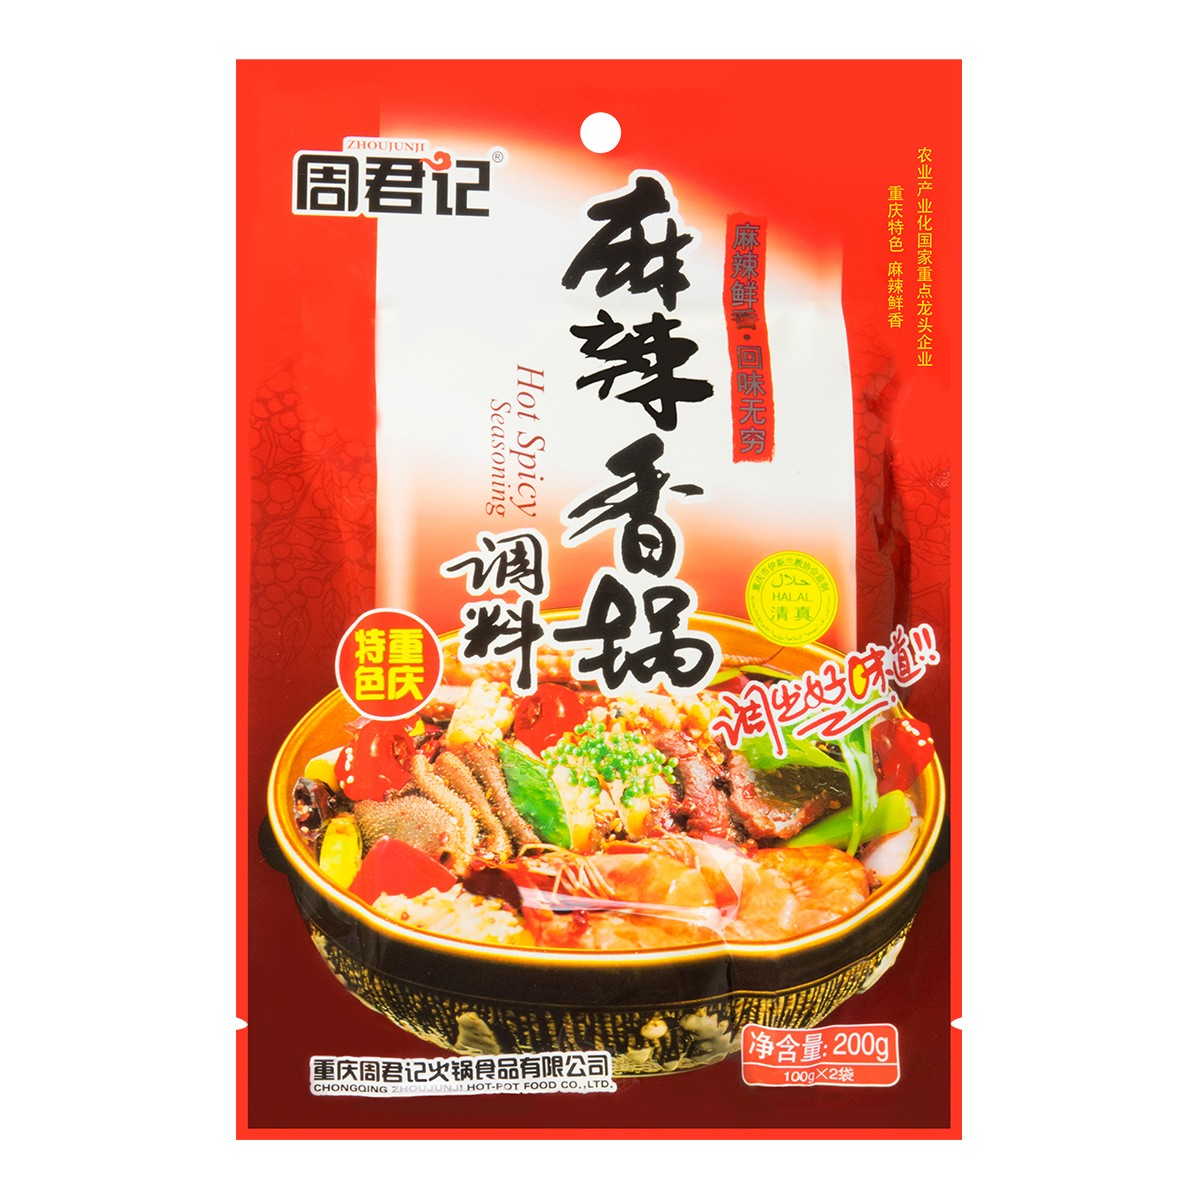 ZHOUJUNJI Hot Spicy Seasoning 200g